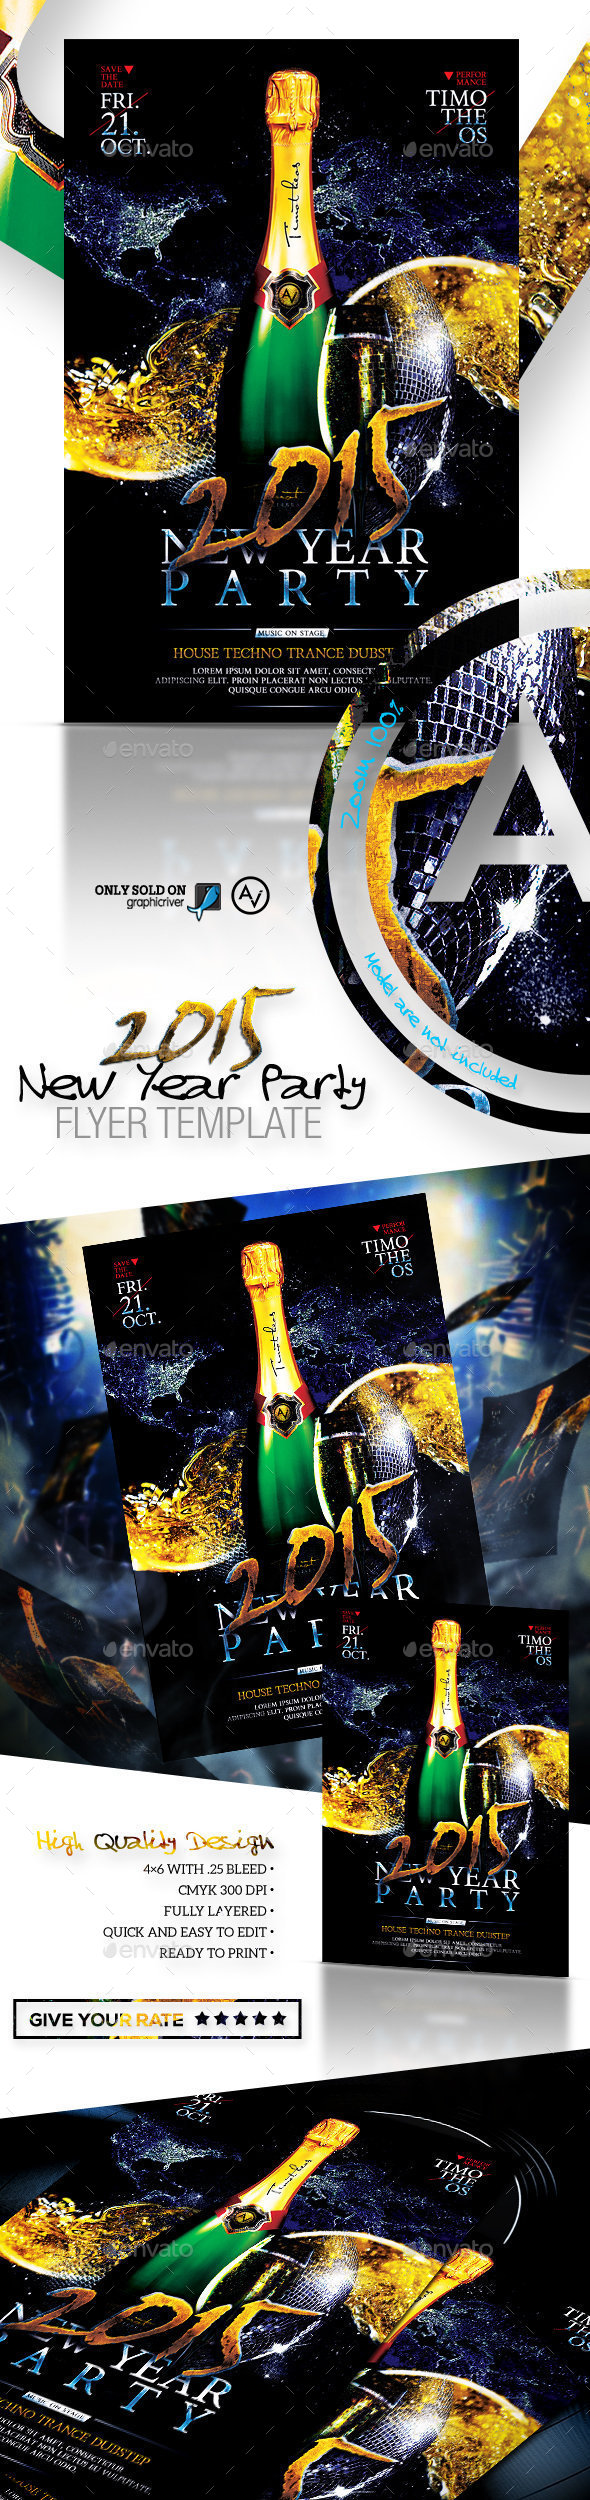 2015 New Year Party Flyer Template - Clubs & Parties Events